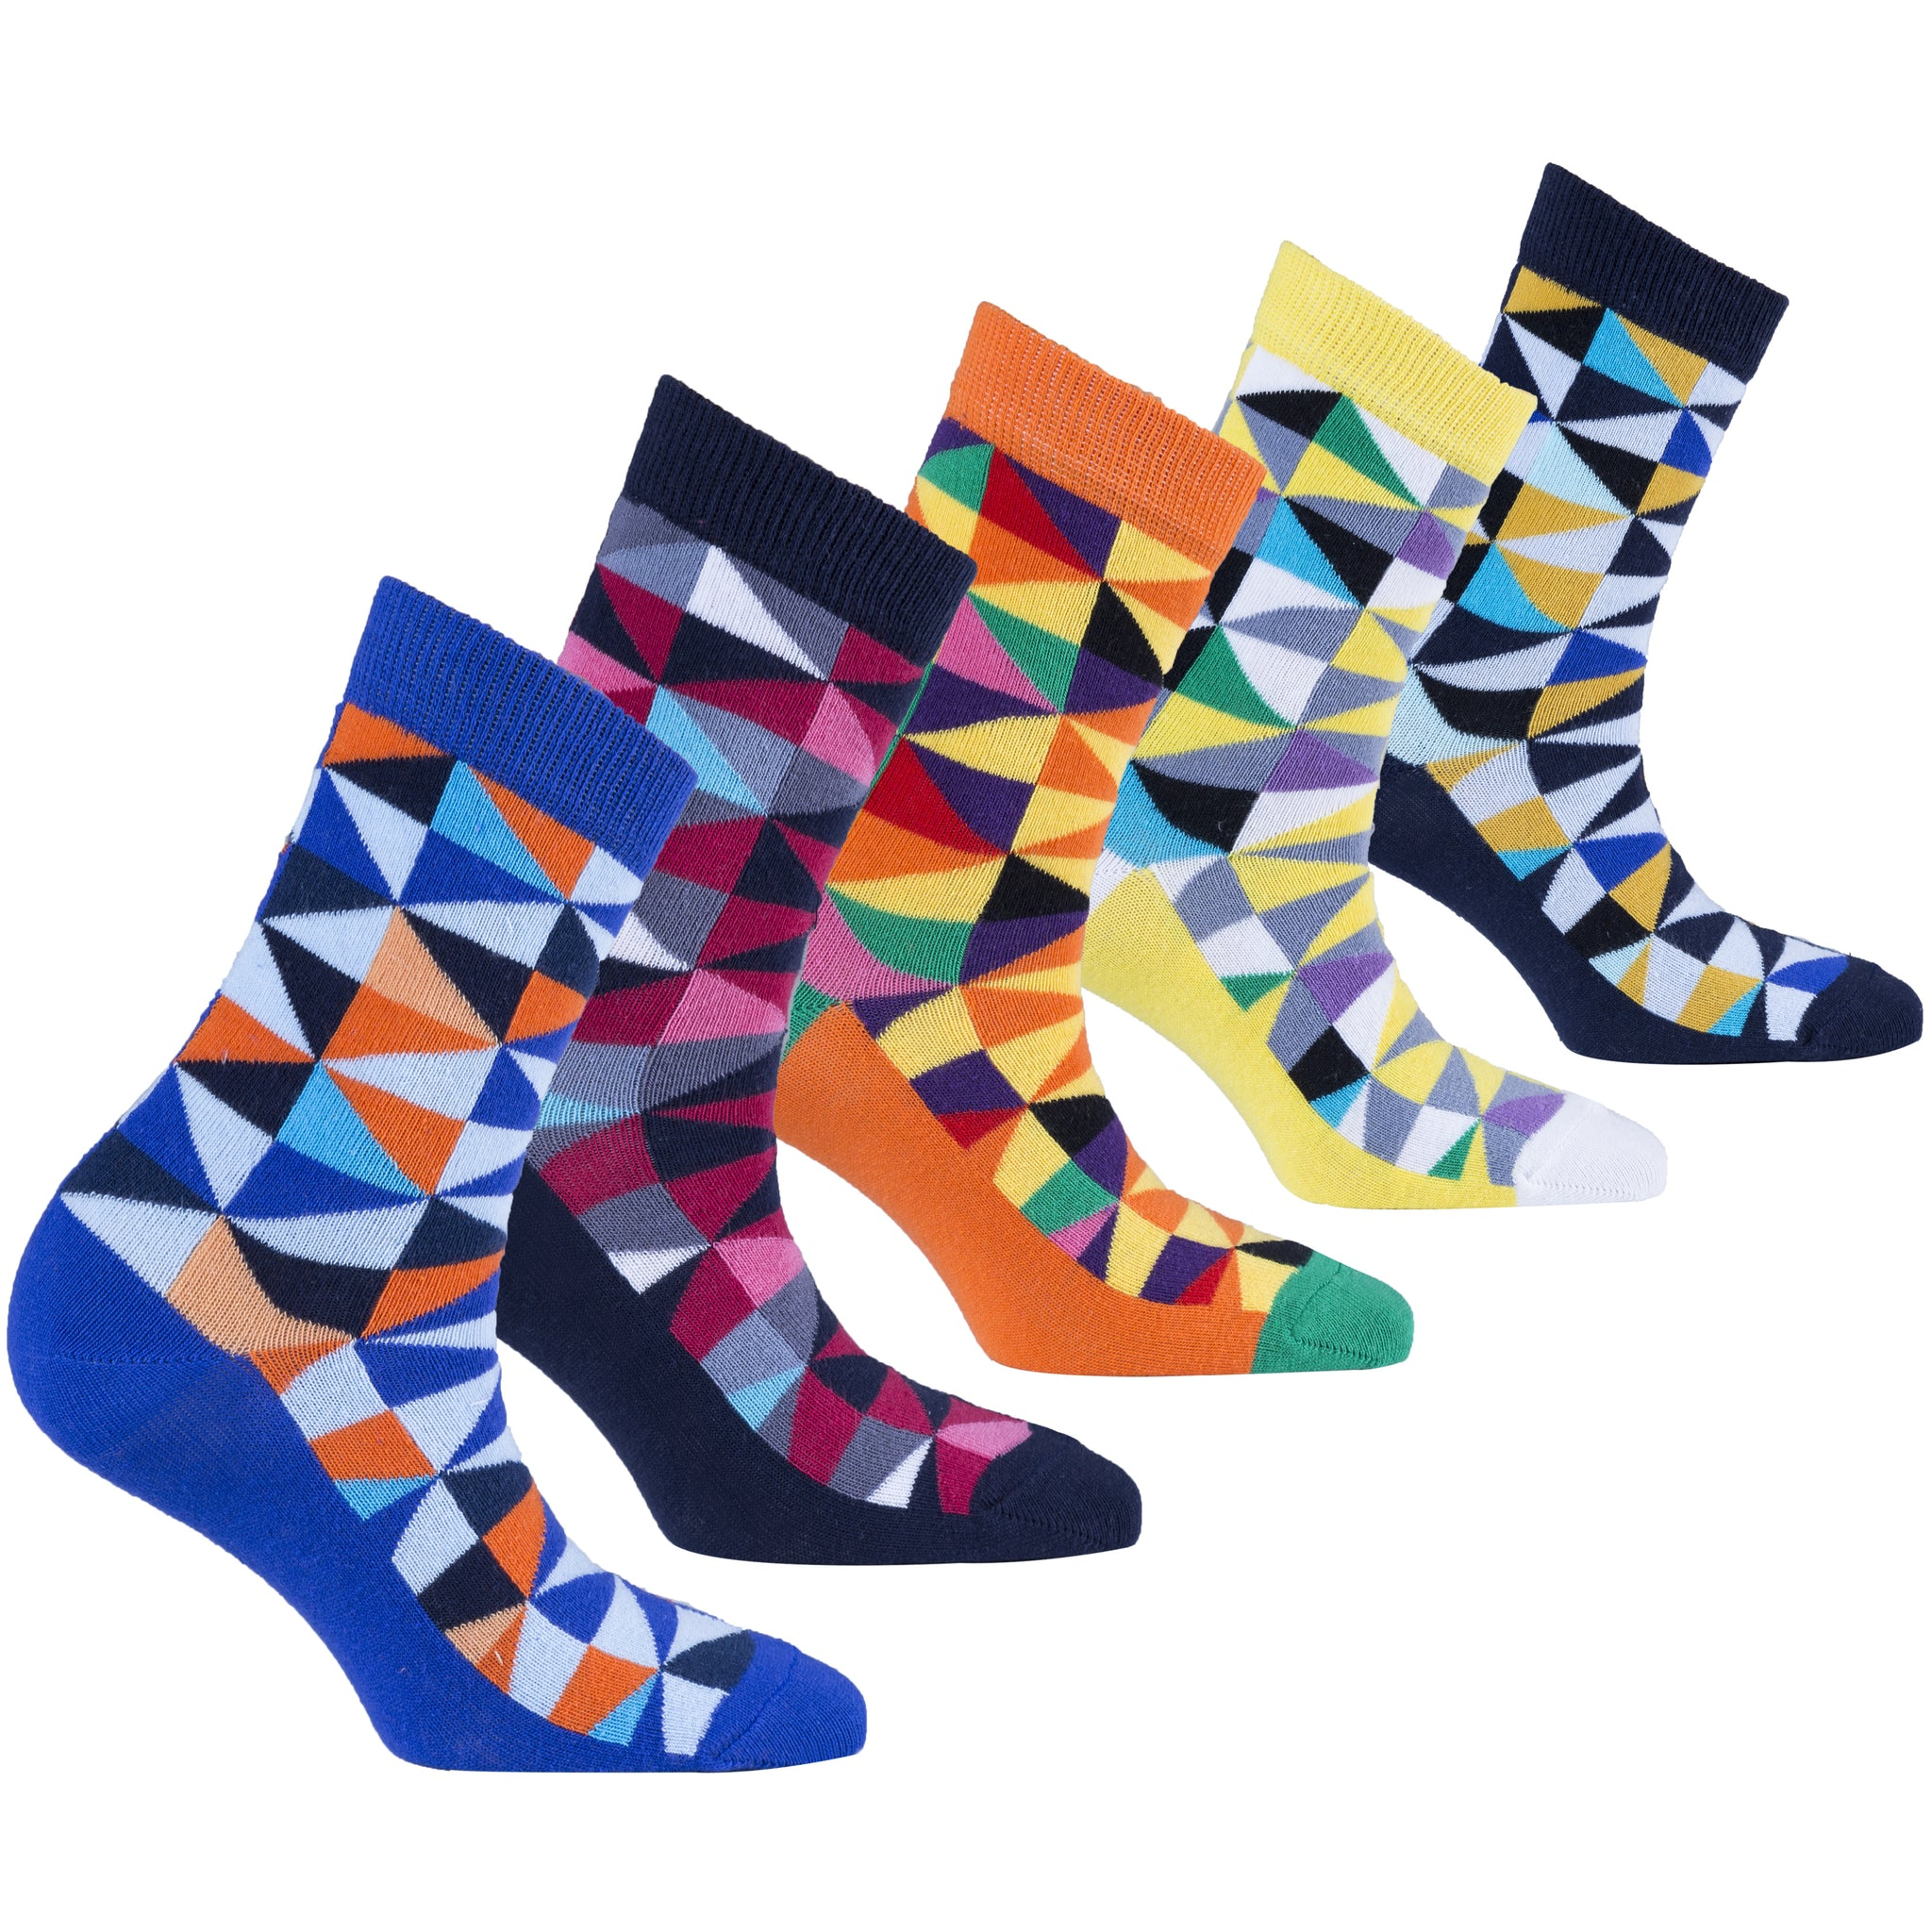 Women's Stylish Triangle Socks Set